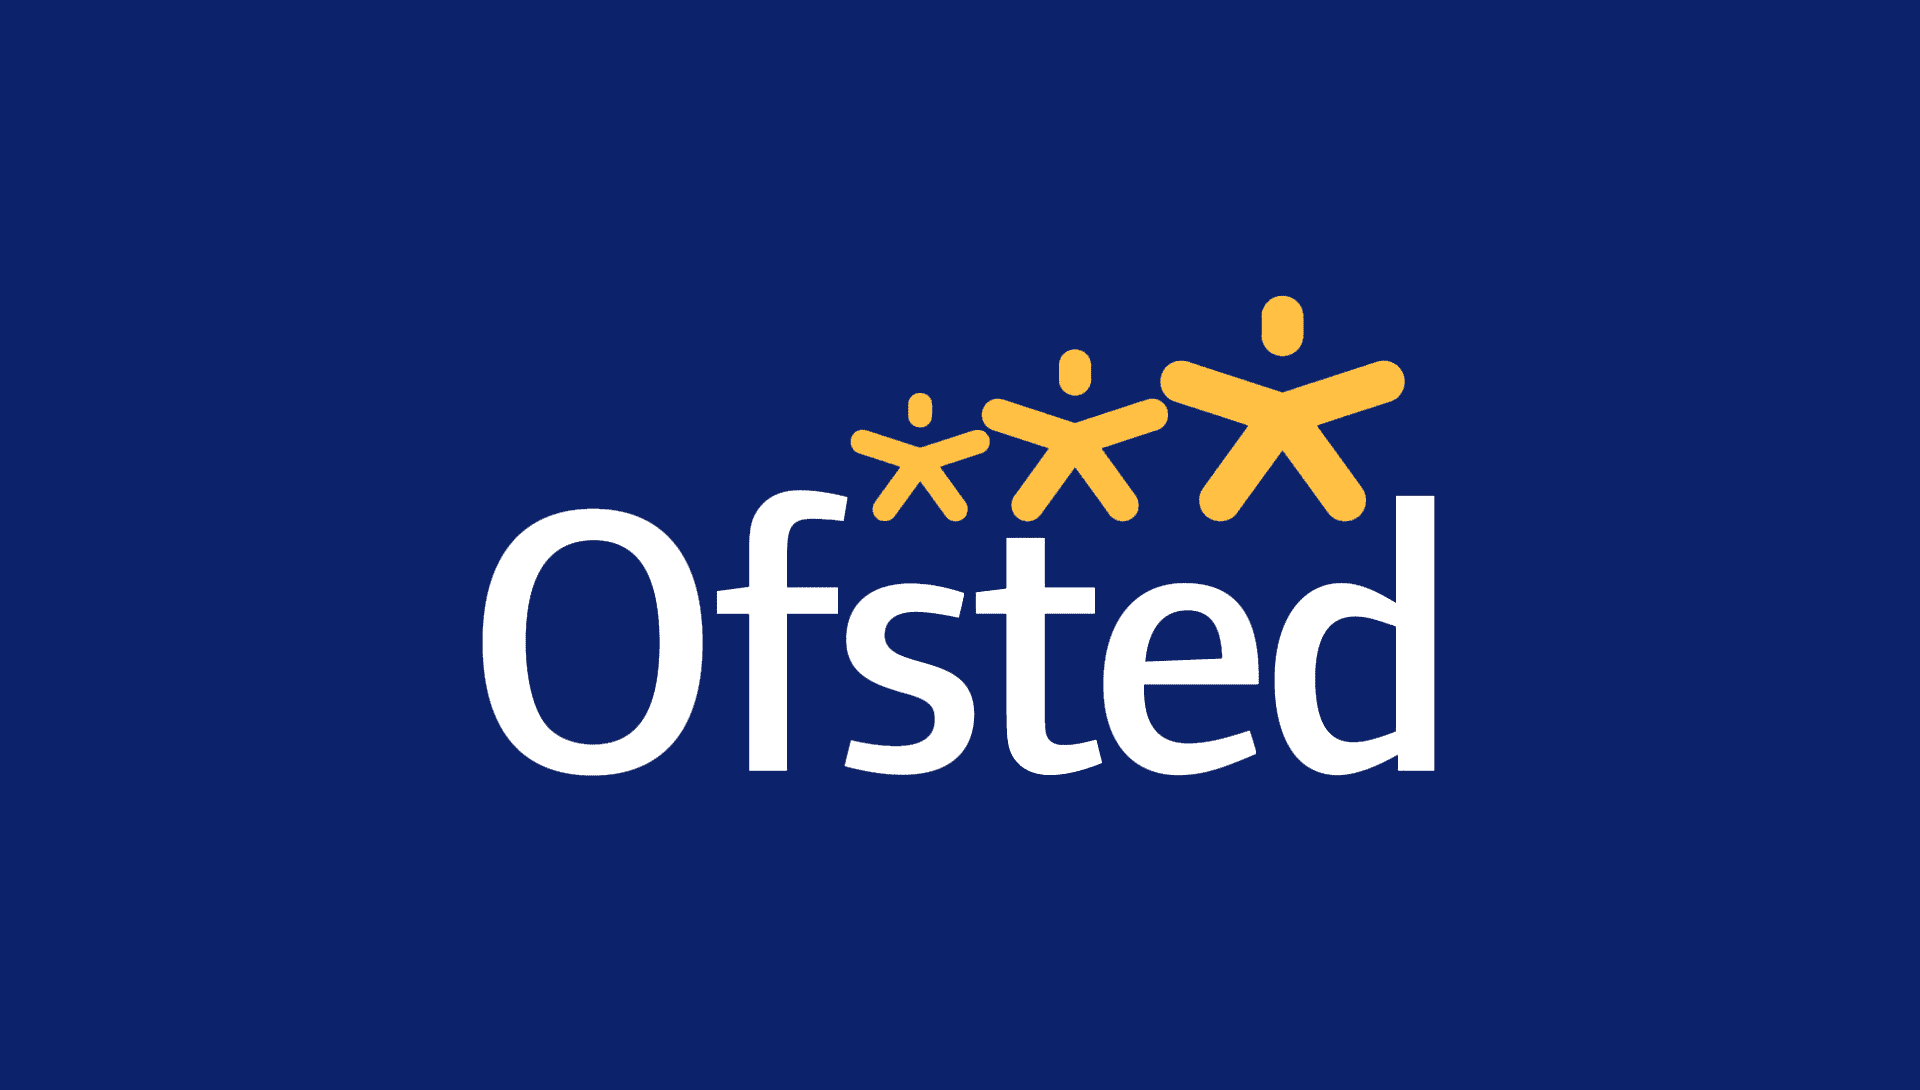 ofsted-logo-blue1